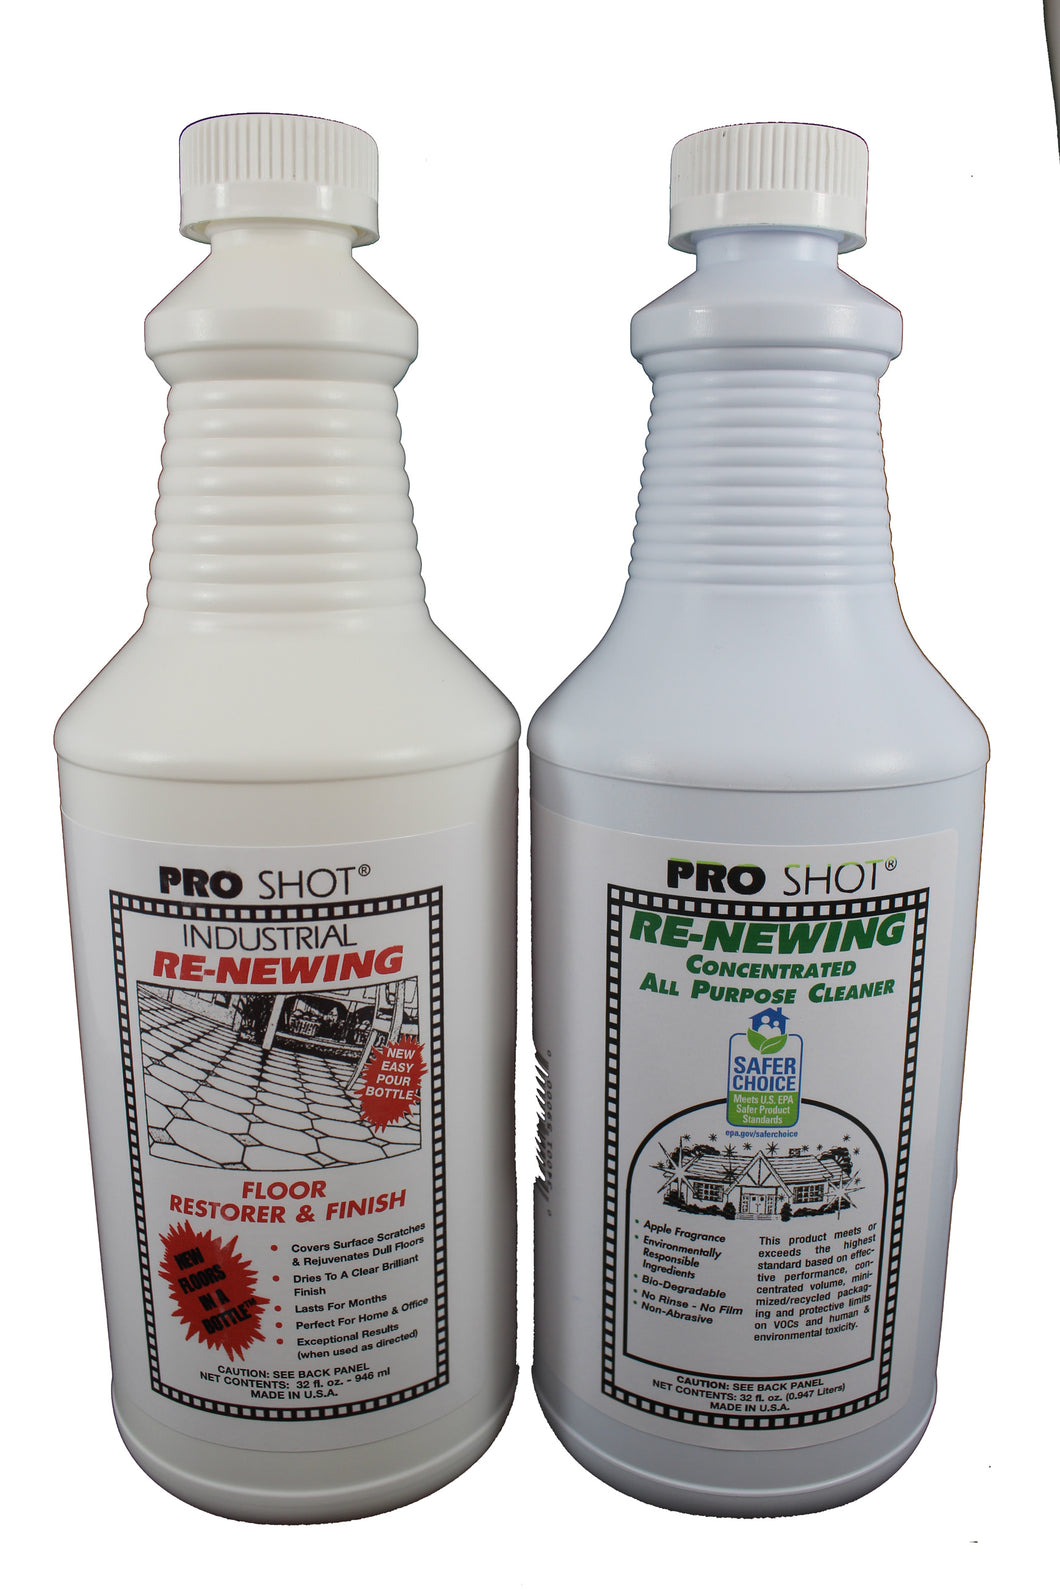 PRO SHOT® Floor Restorer & Finish 32 oz and PRO SHOT All Purpose Cleaner image